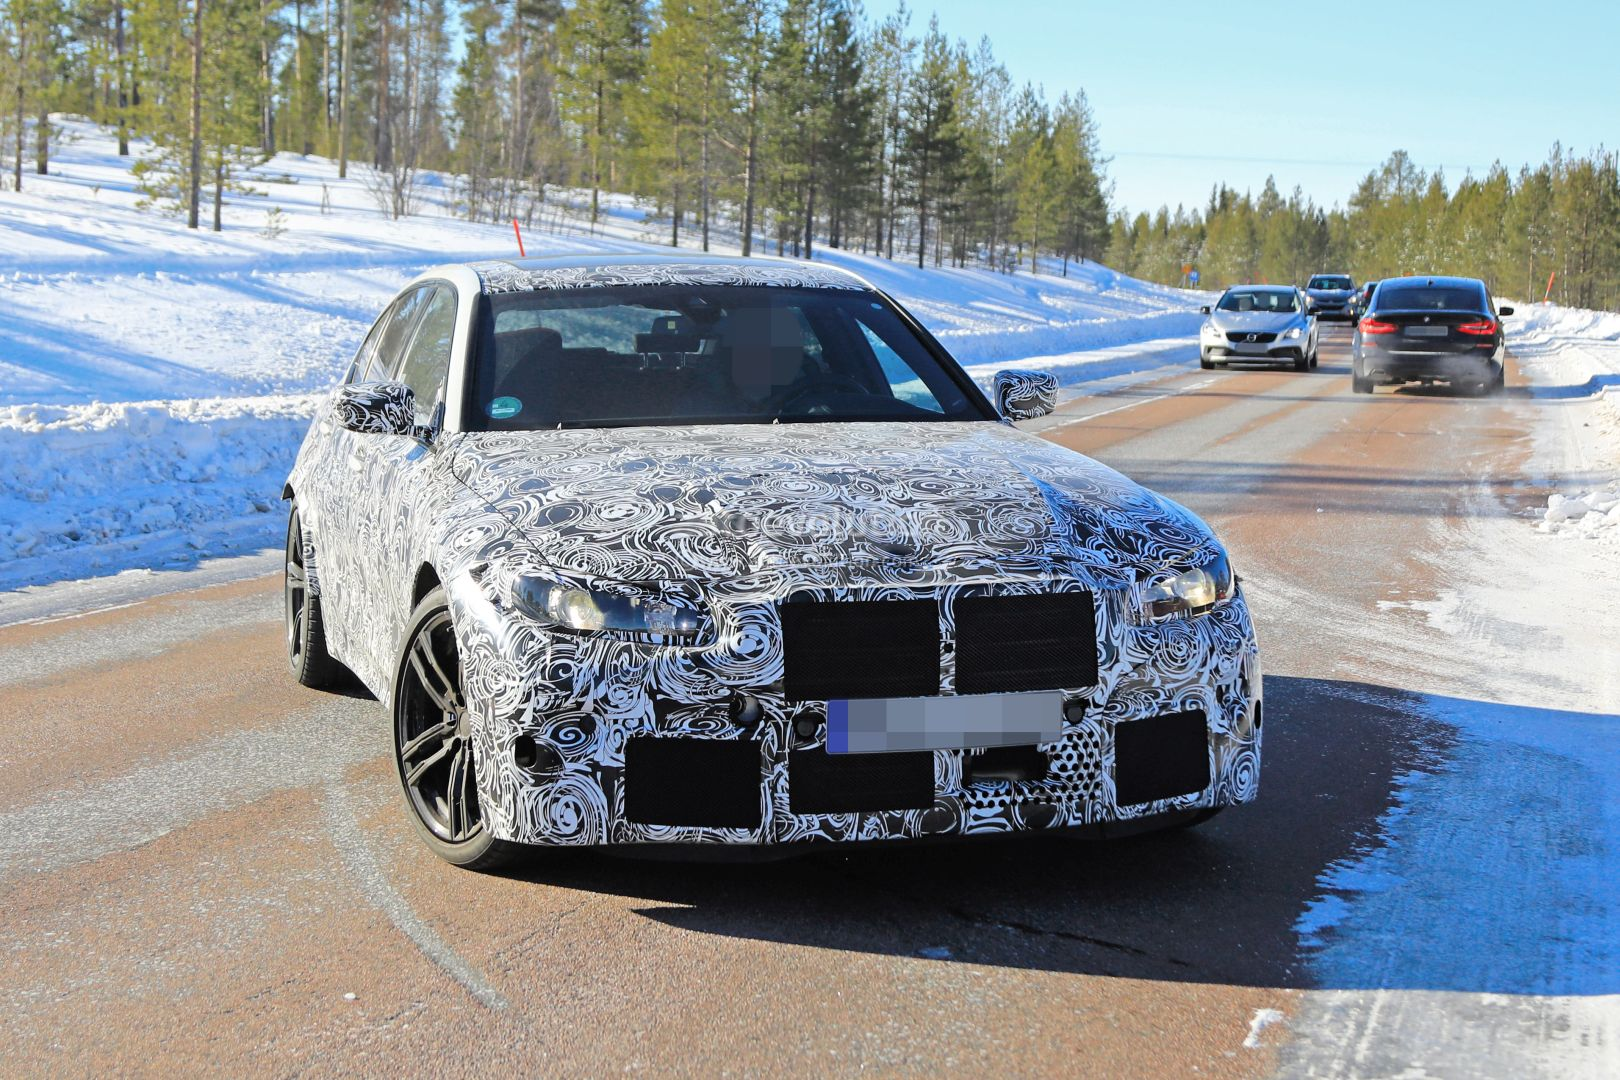 2020 - [BMW] M3/M4 - Page 3 2020-bmw-m3-spotted-in-traffic-shows-flared-wheel-arches_6